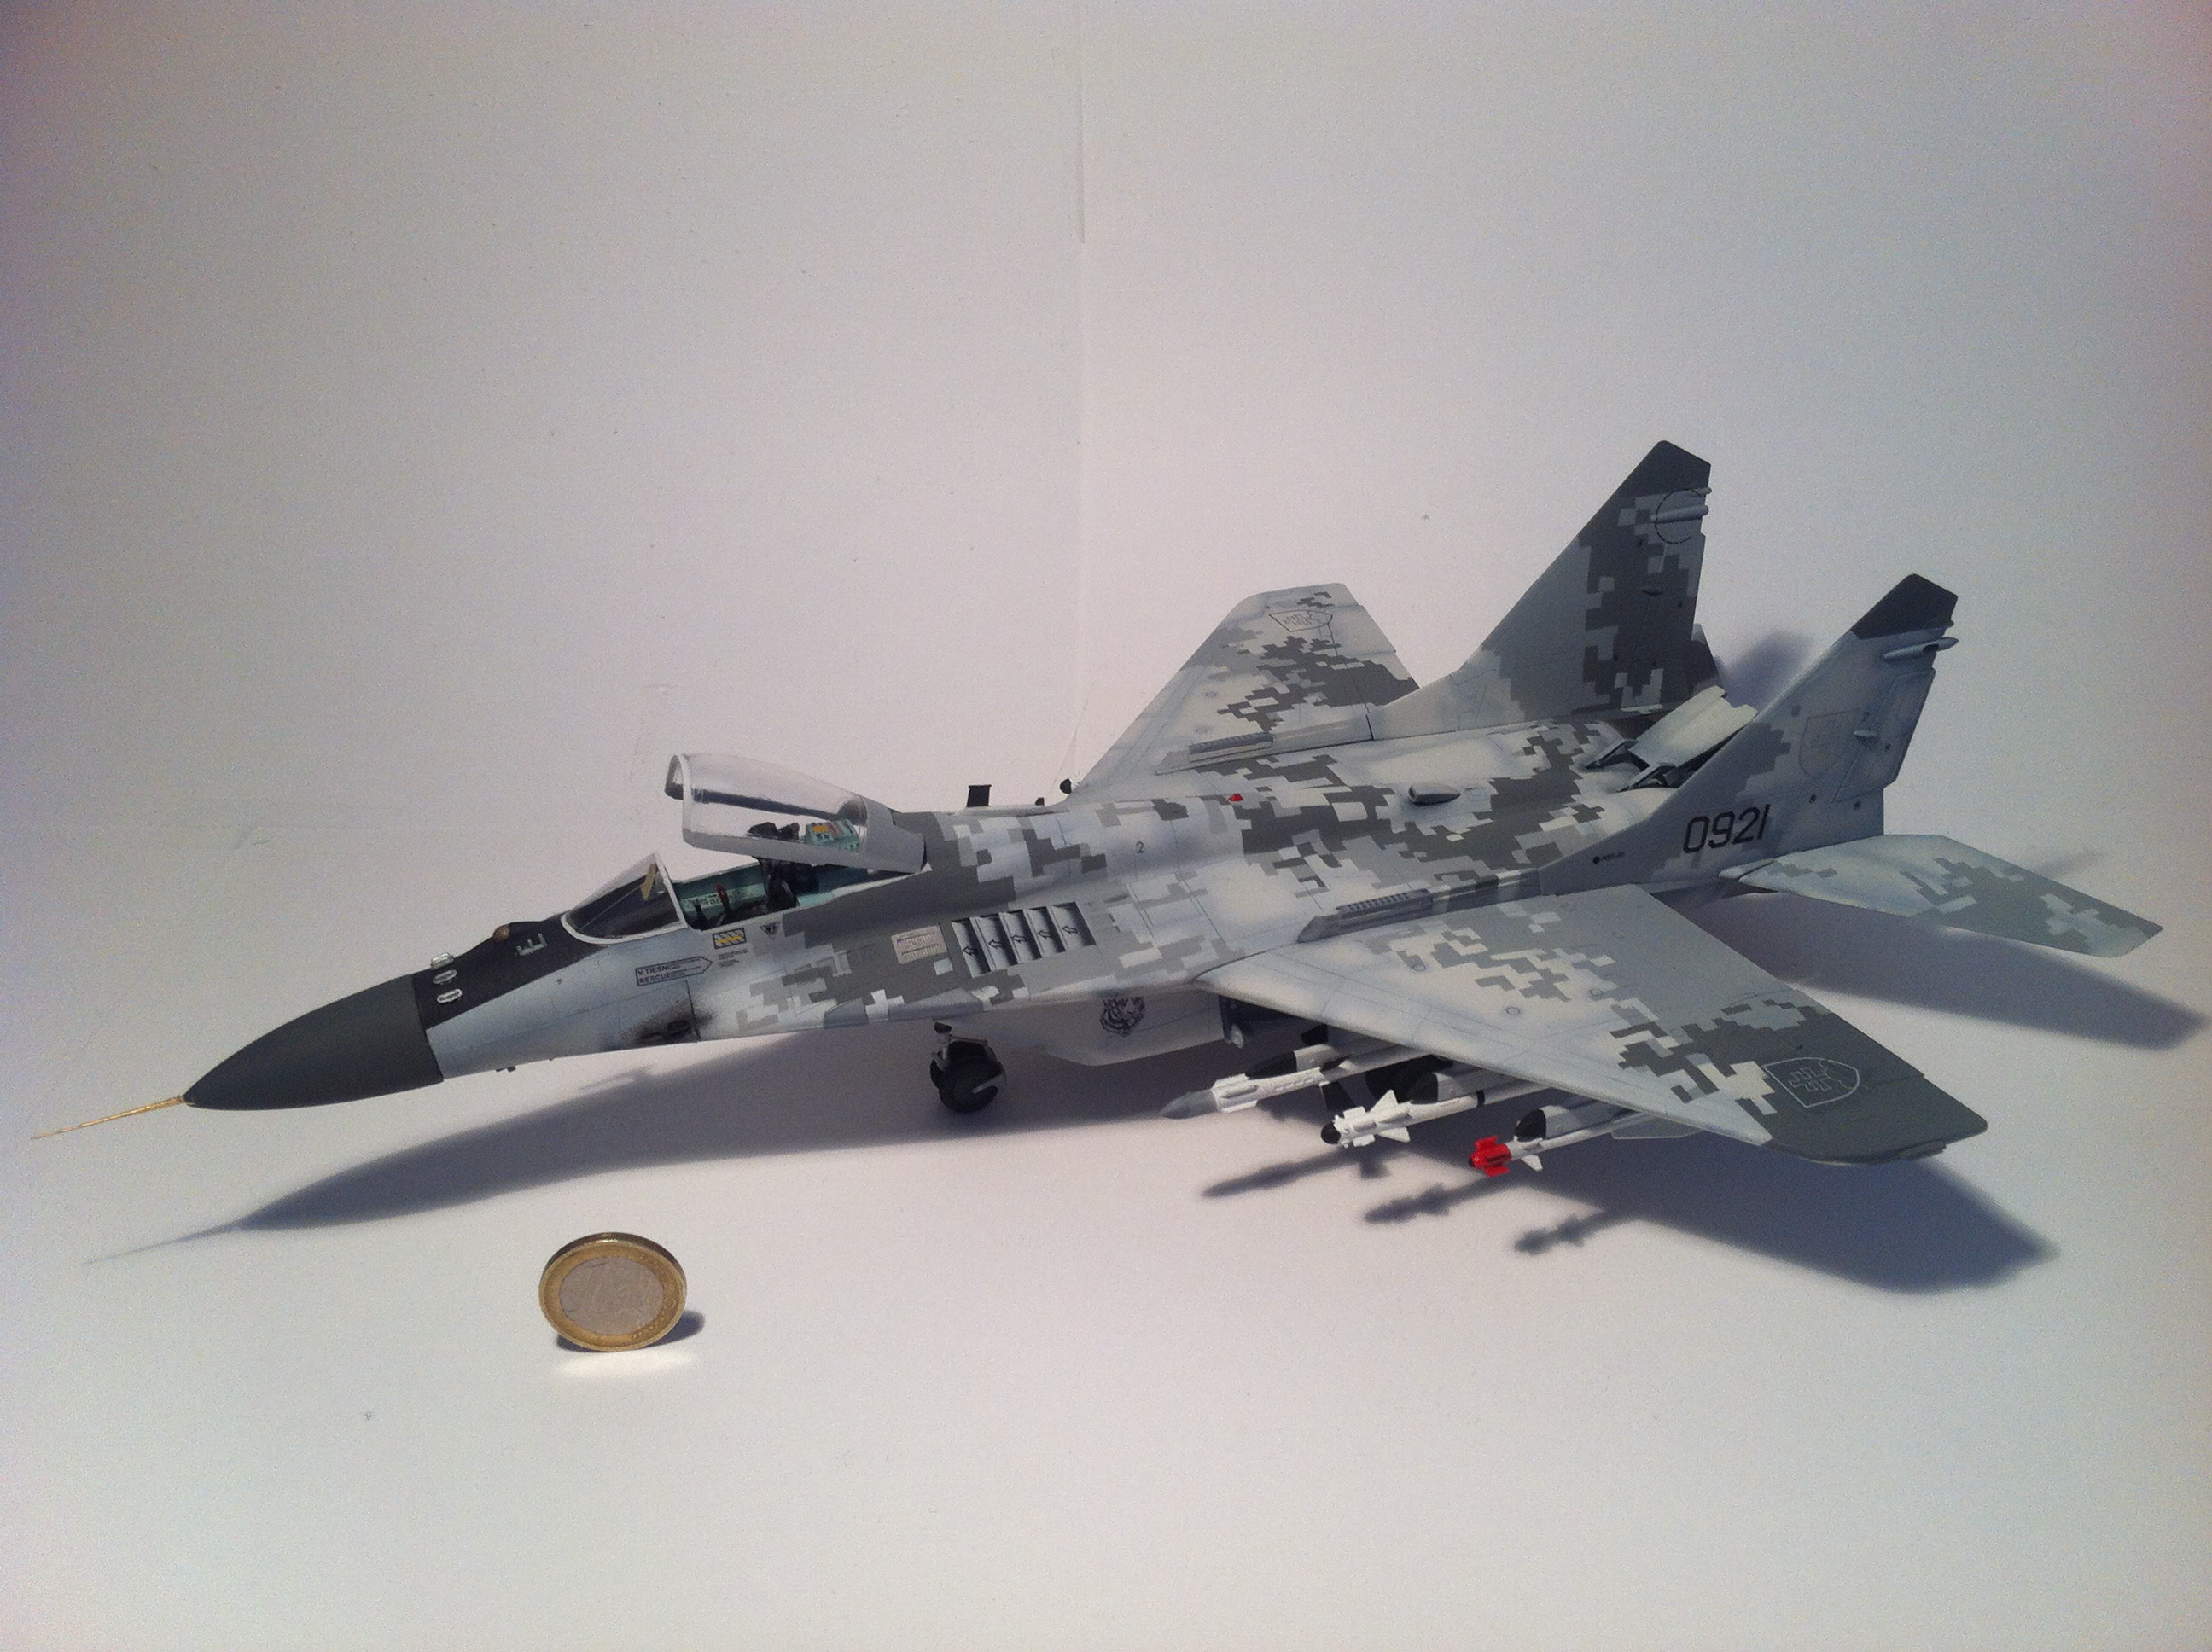 Air Force Academy >> Slovak Air Force MiG-29 with 2008 Digital Camoflage, 1/48